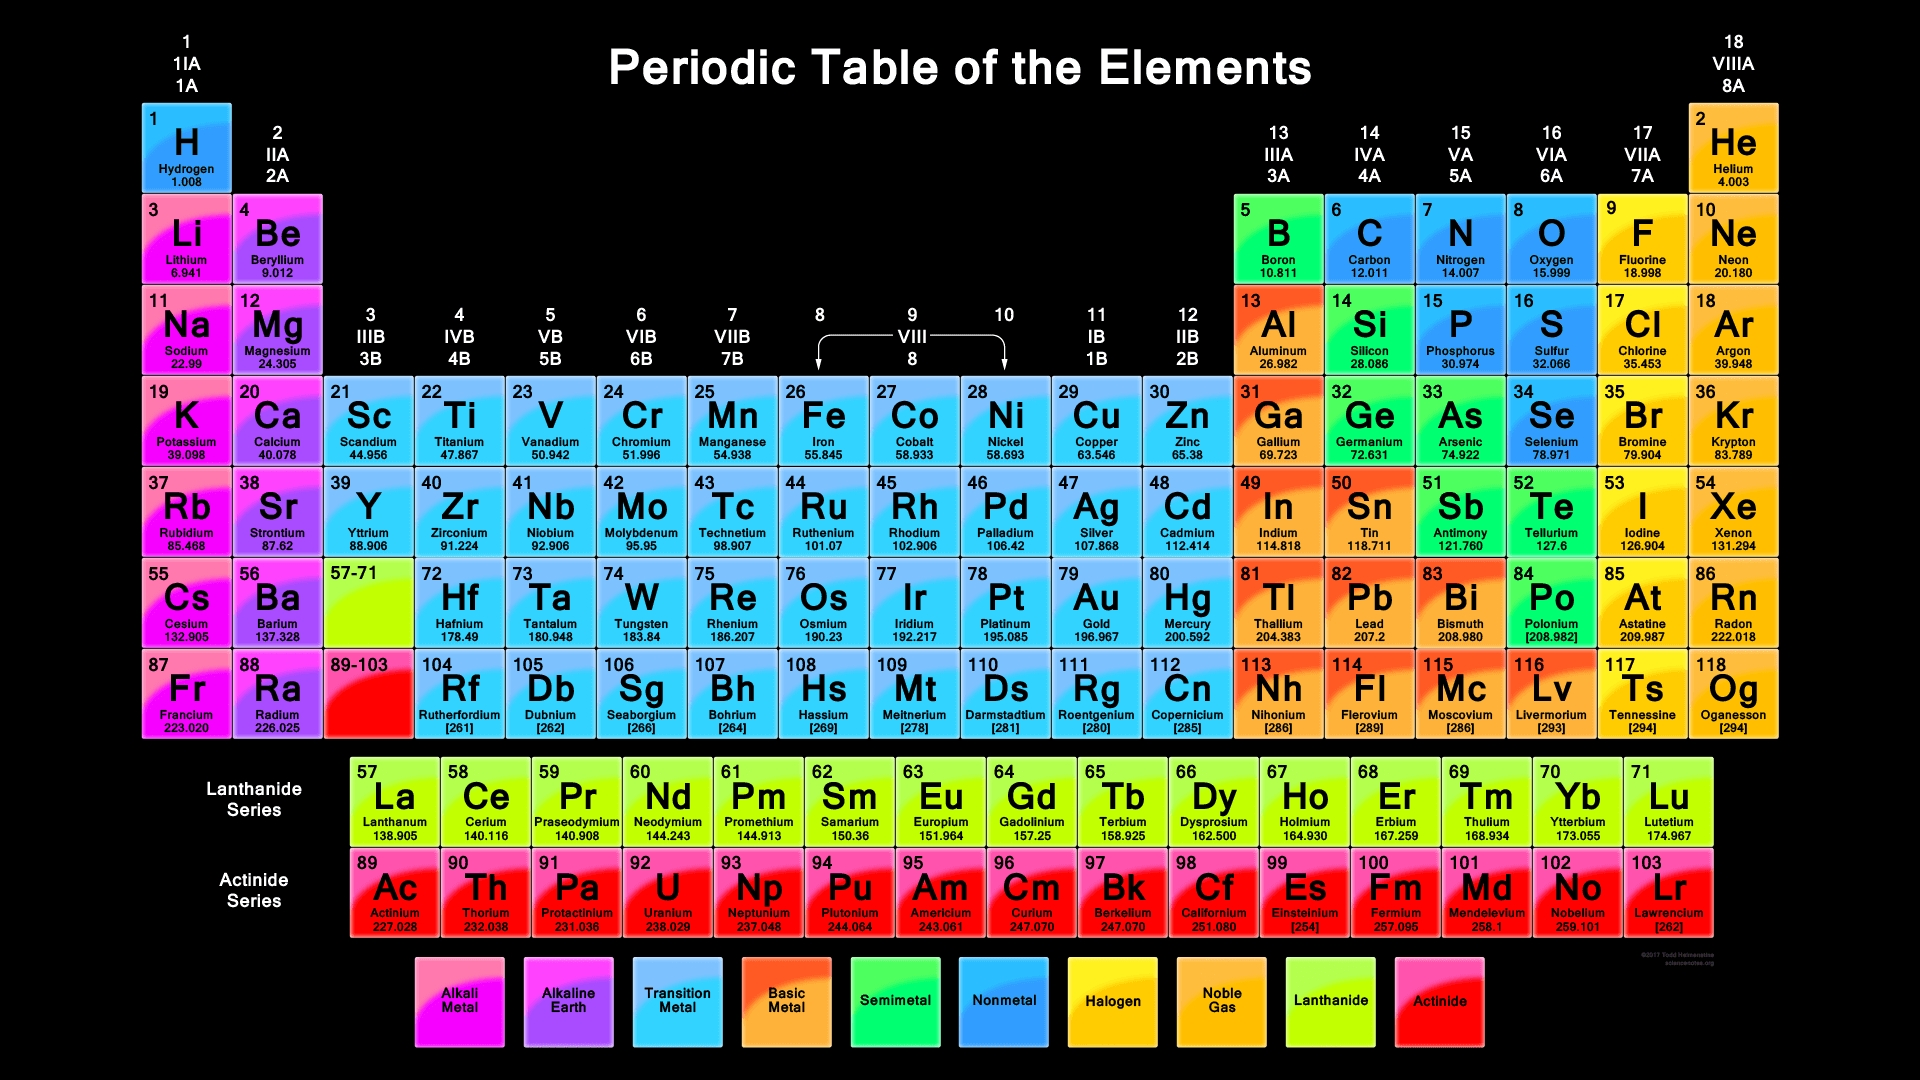 hd wallpaper of periodic table - vibrant color periodic table